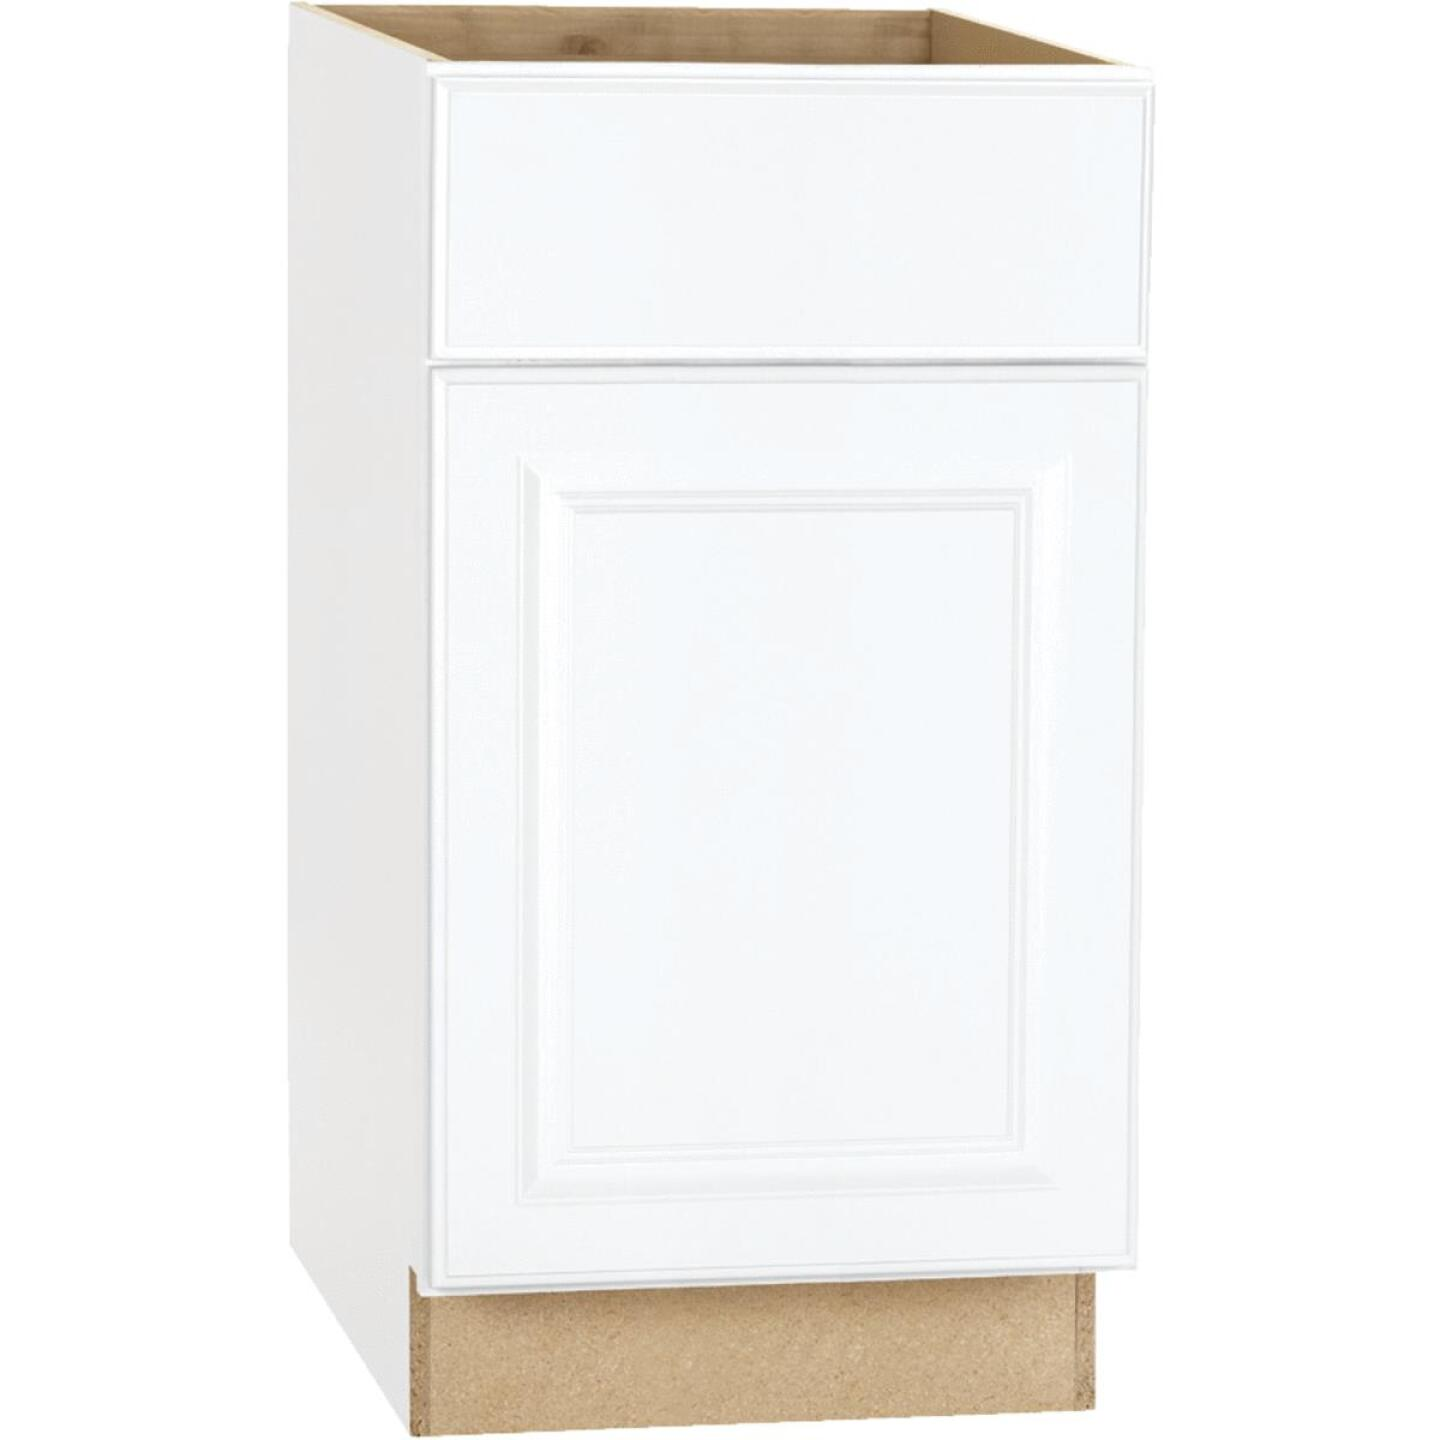 Continental Cabinets Hamilton 18 In. W x 34-1/2 In. H x 24 In. D Satin White Maple Base Kitchen Cabinet Image 2